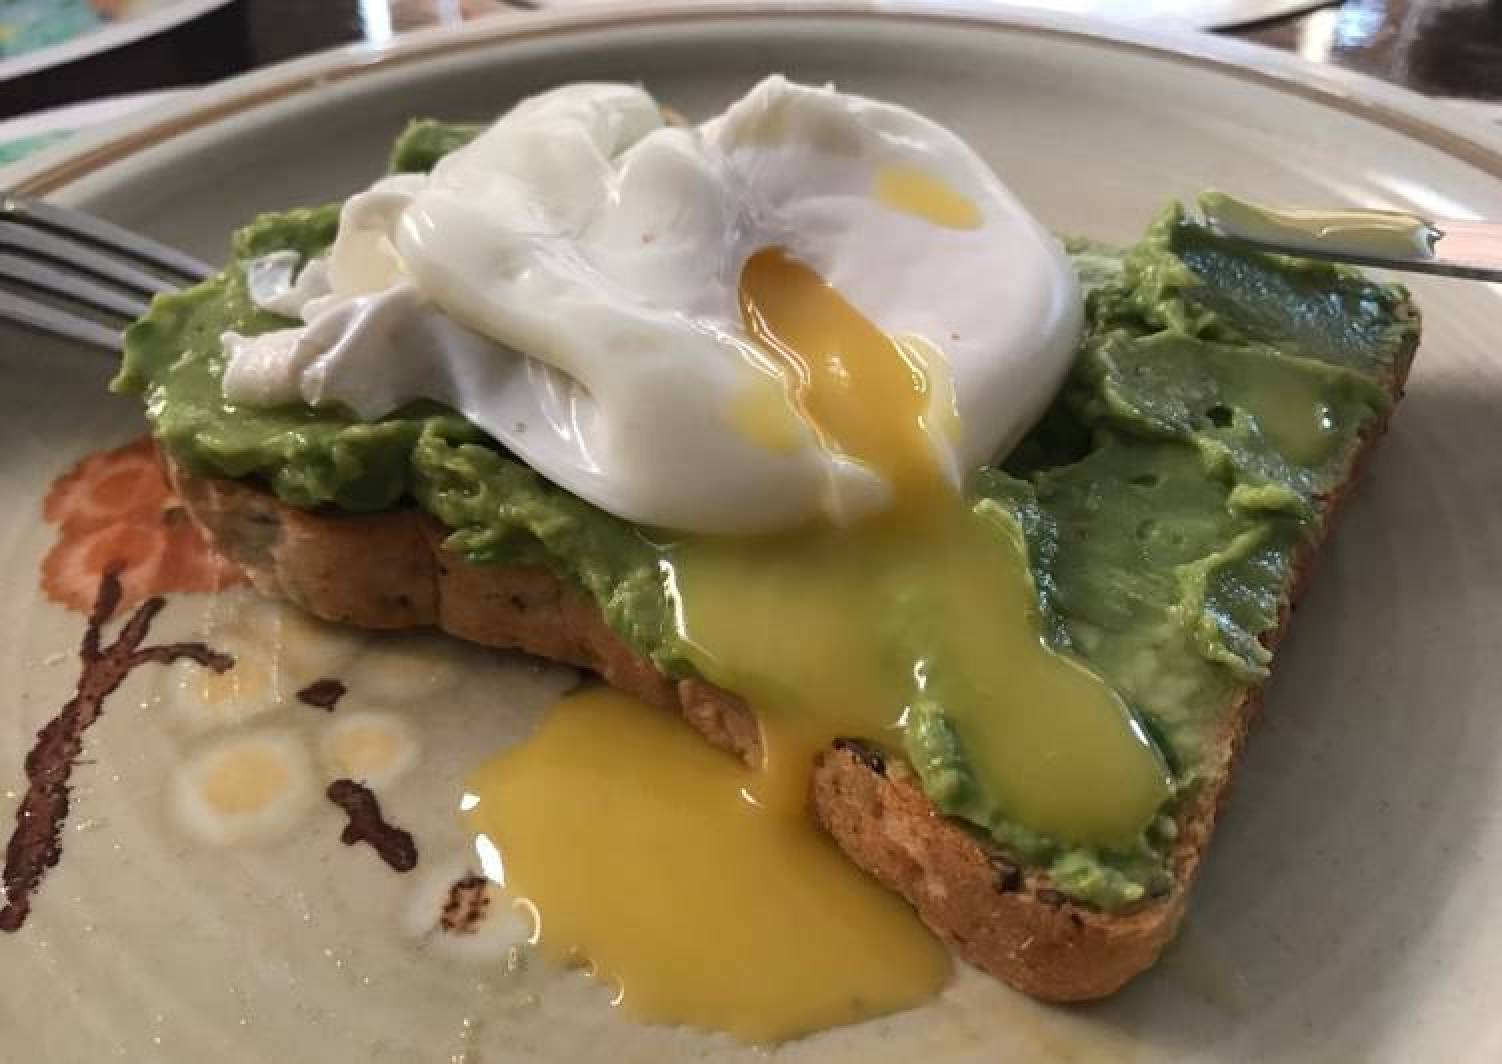 Poached egg on avocado toast